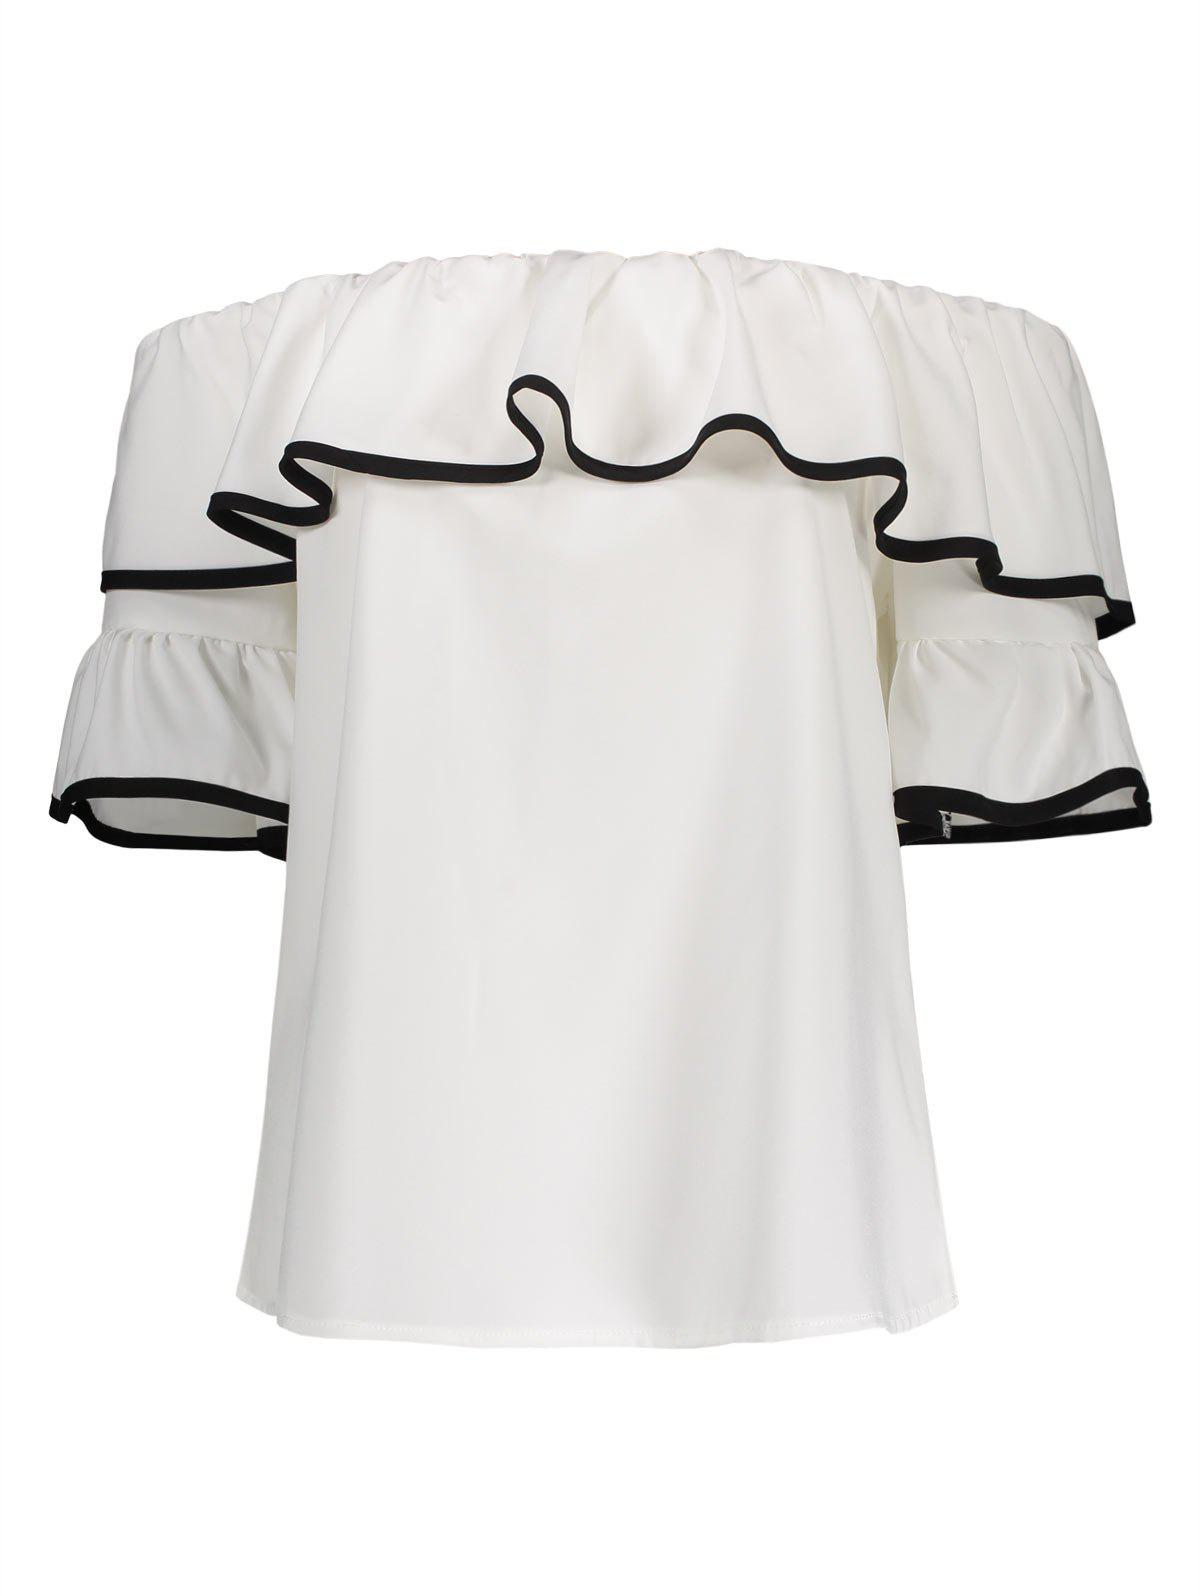 Bell Sleeves Off The Shoulder Top - WHITE S